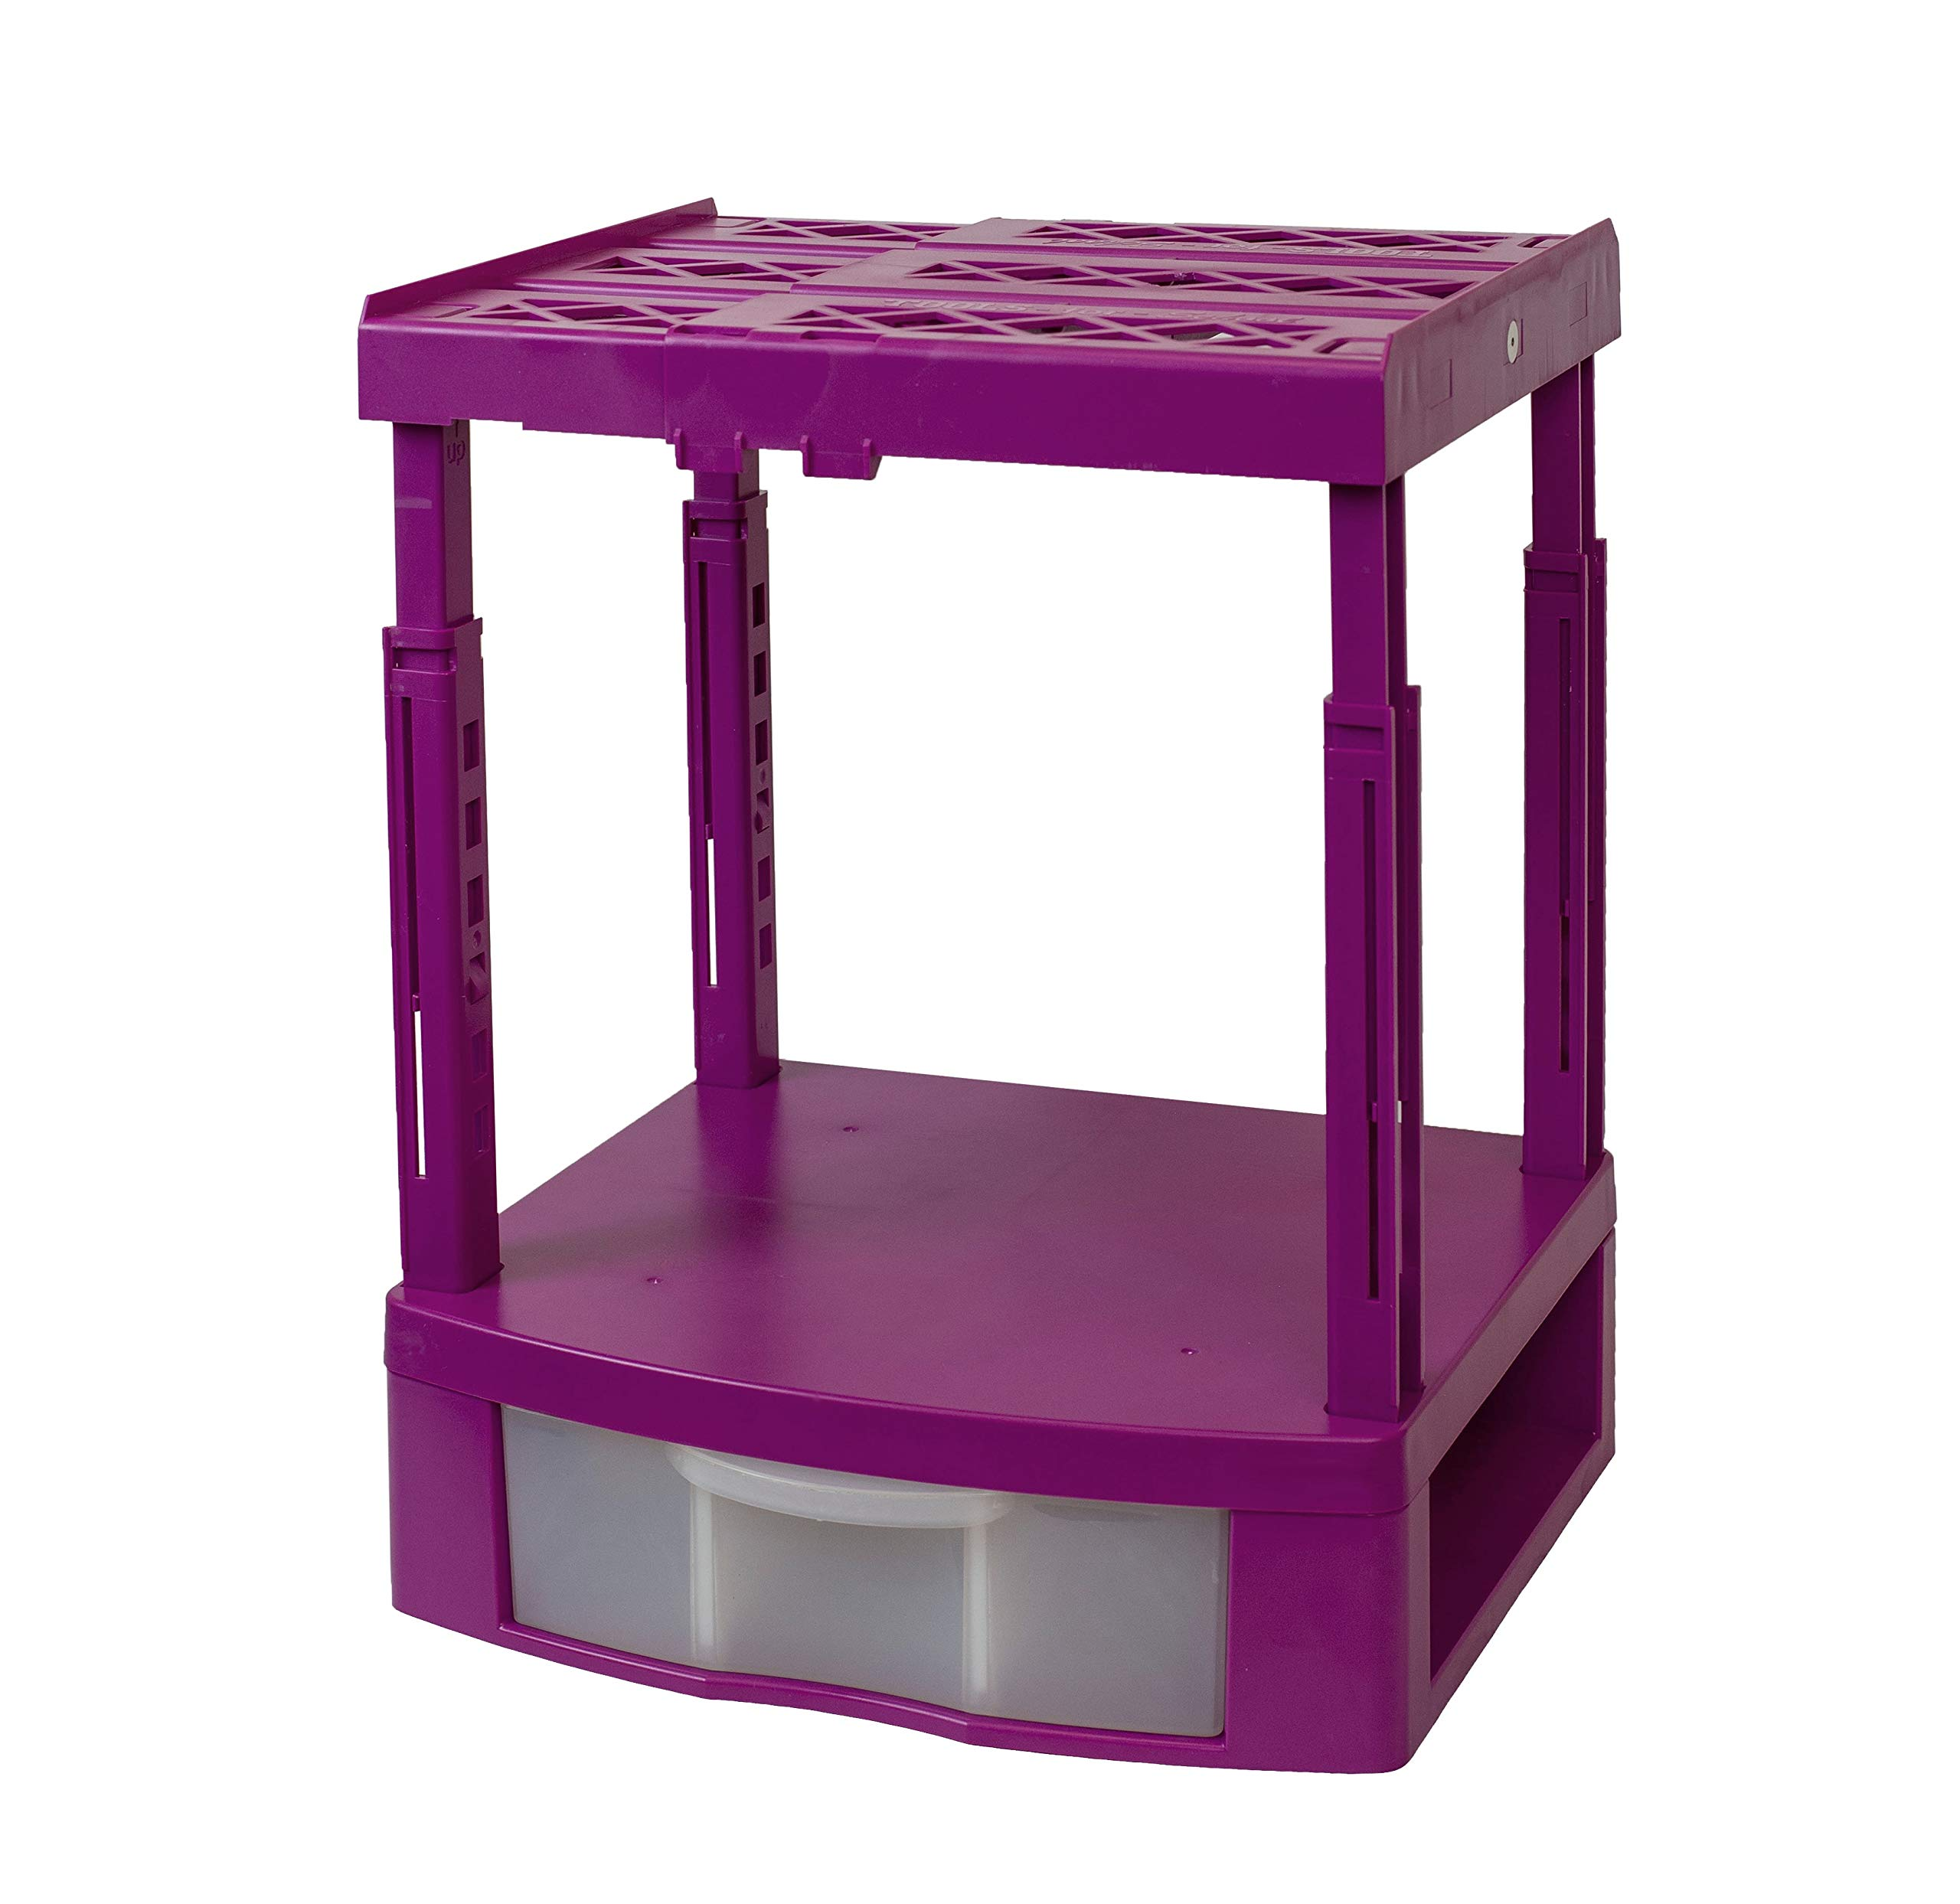 Tools for School Locker Organizer - Double Drawer with Height Adjustable Shelf (Magenta) by Tools for School